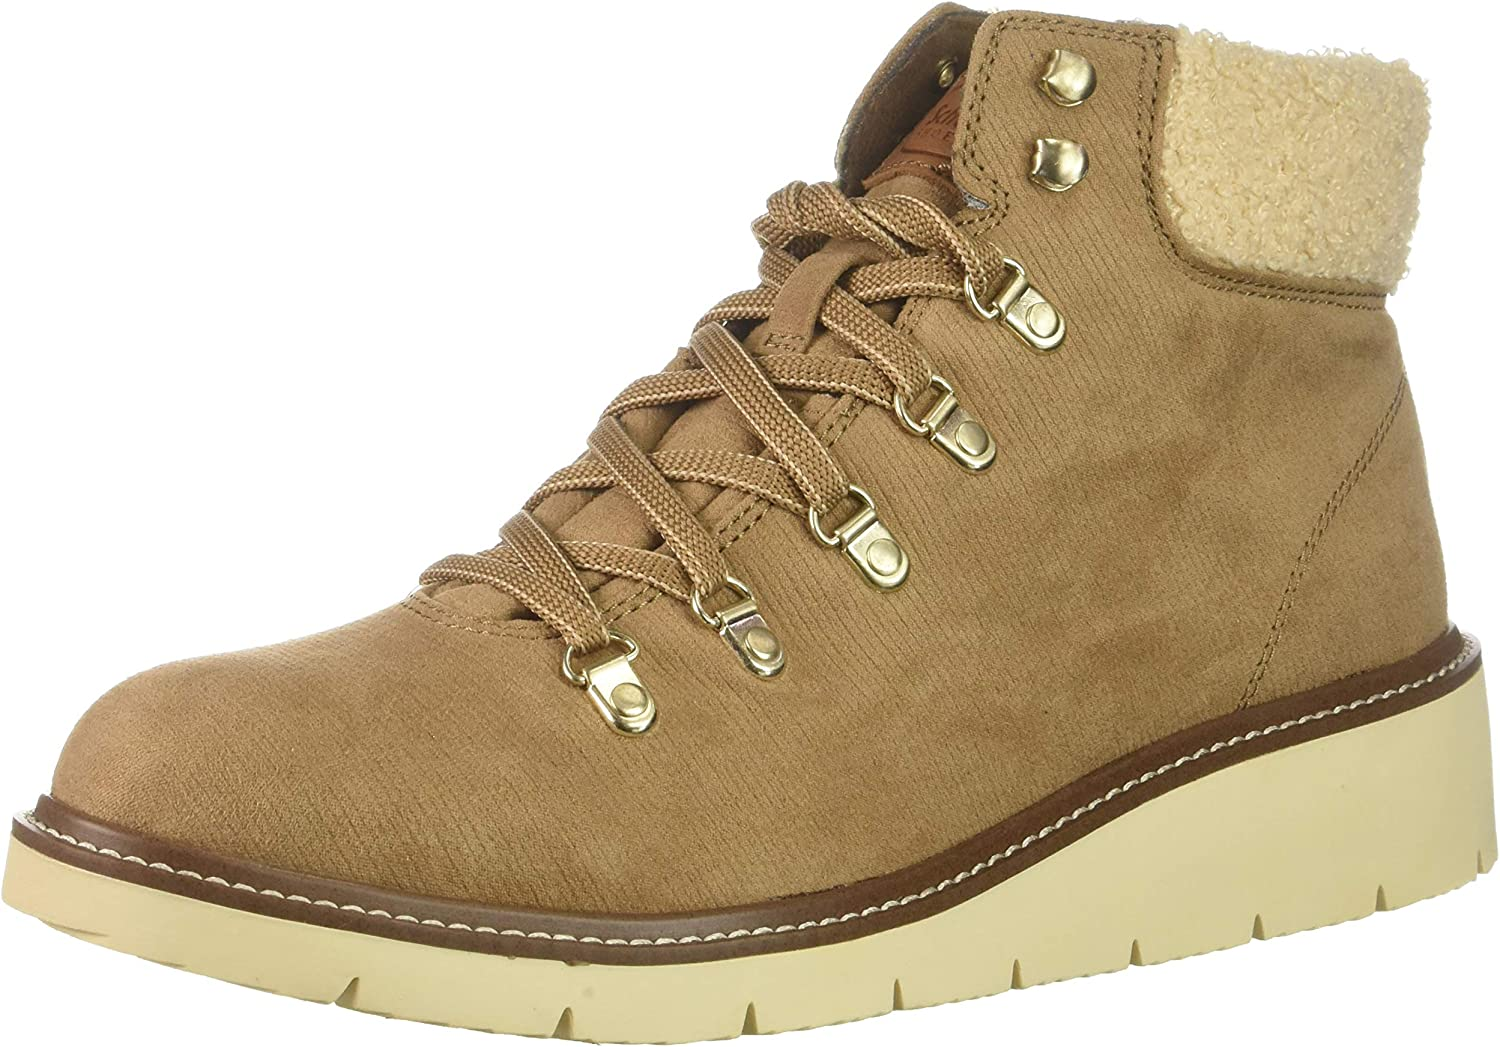 Dr. Scholl's Shoes Women's Max 74% OFF Selling rankings Boot Ankle Sentinel